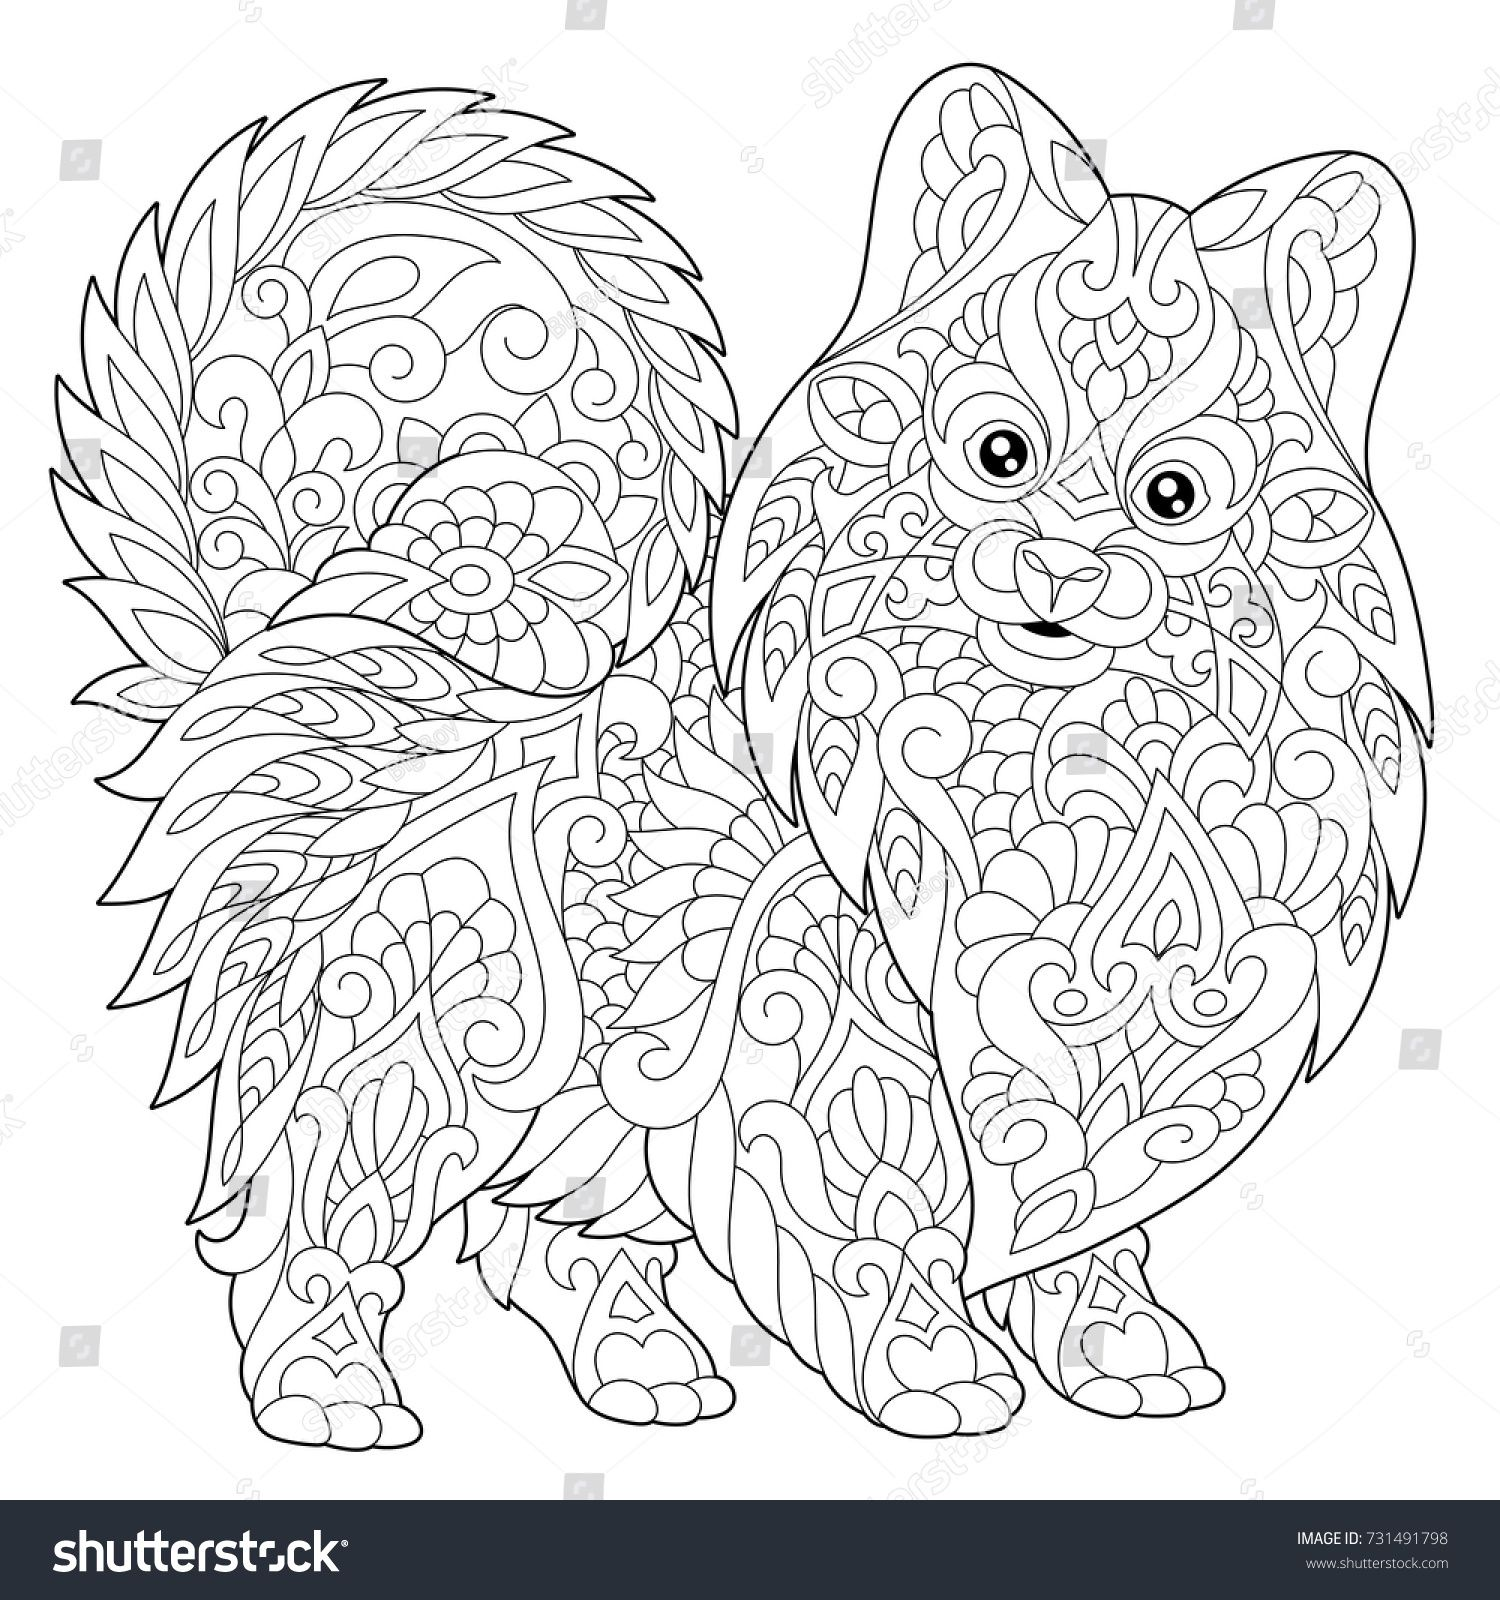 Coloring page of pomeranian dog